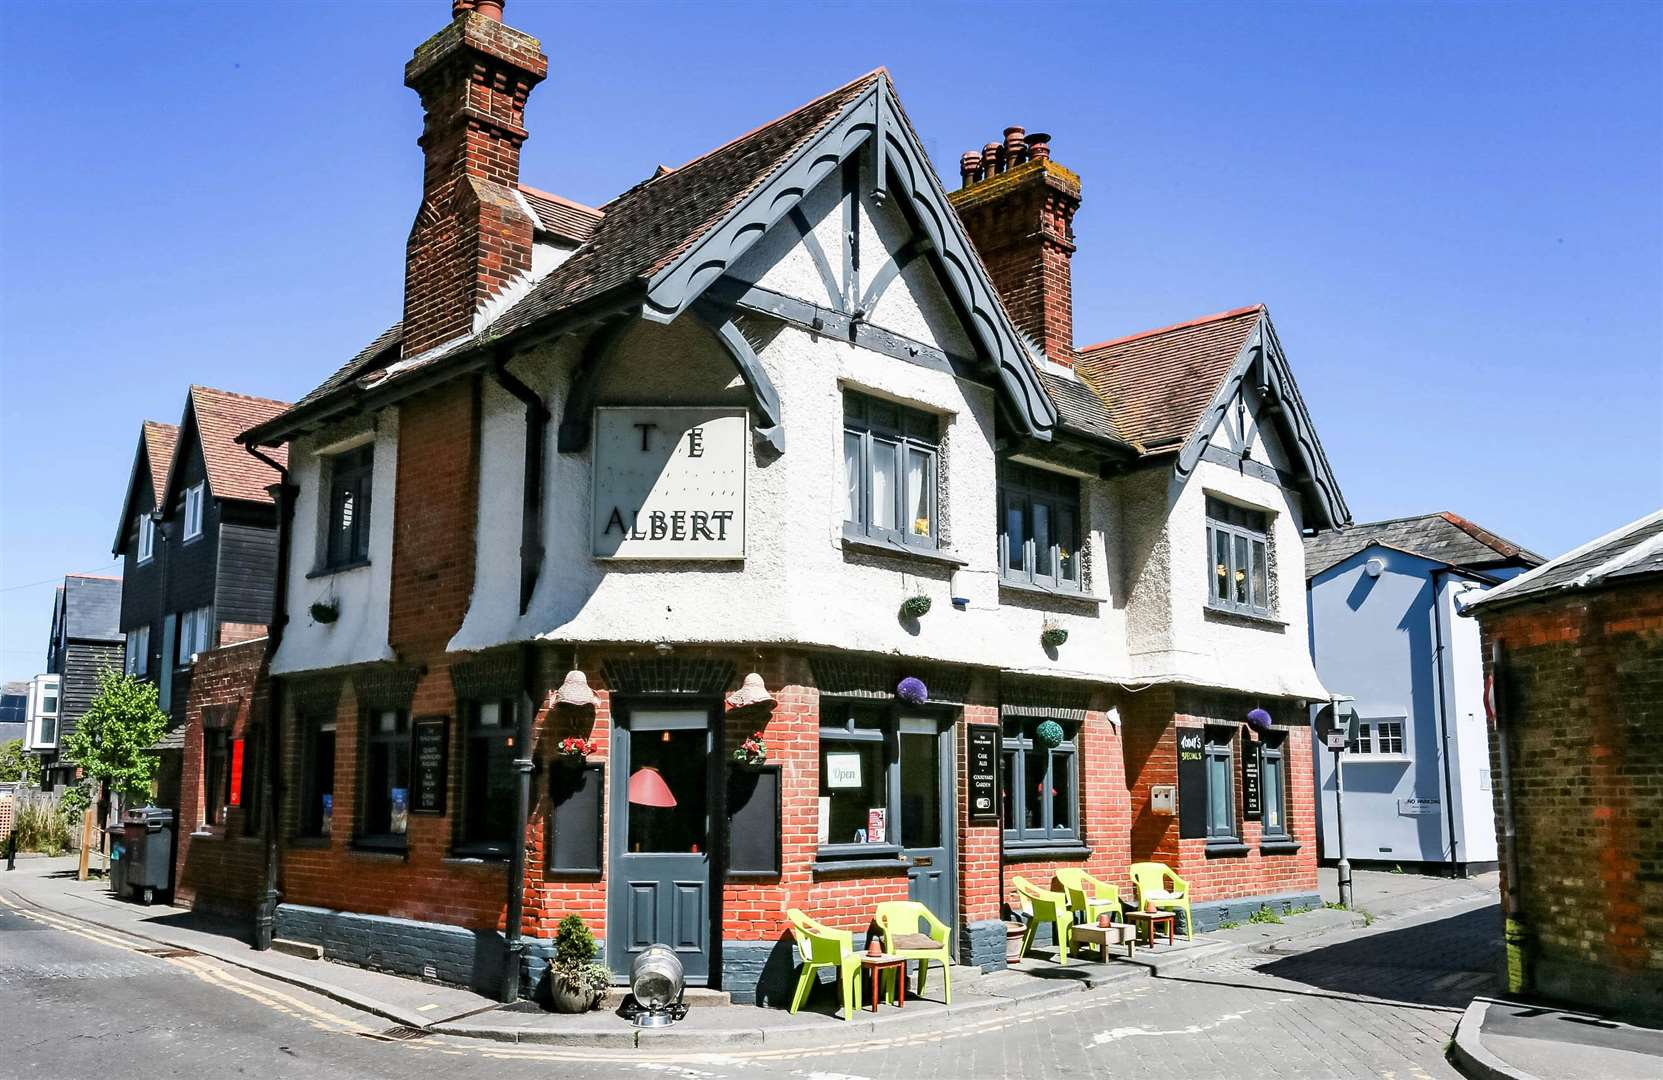 The Prince Albert in Whitstable. Pic: Star Pubs & Bars